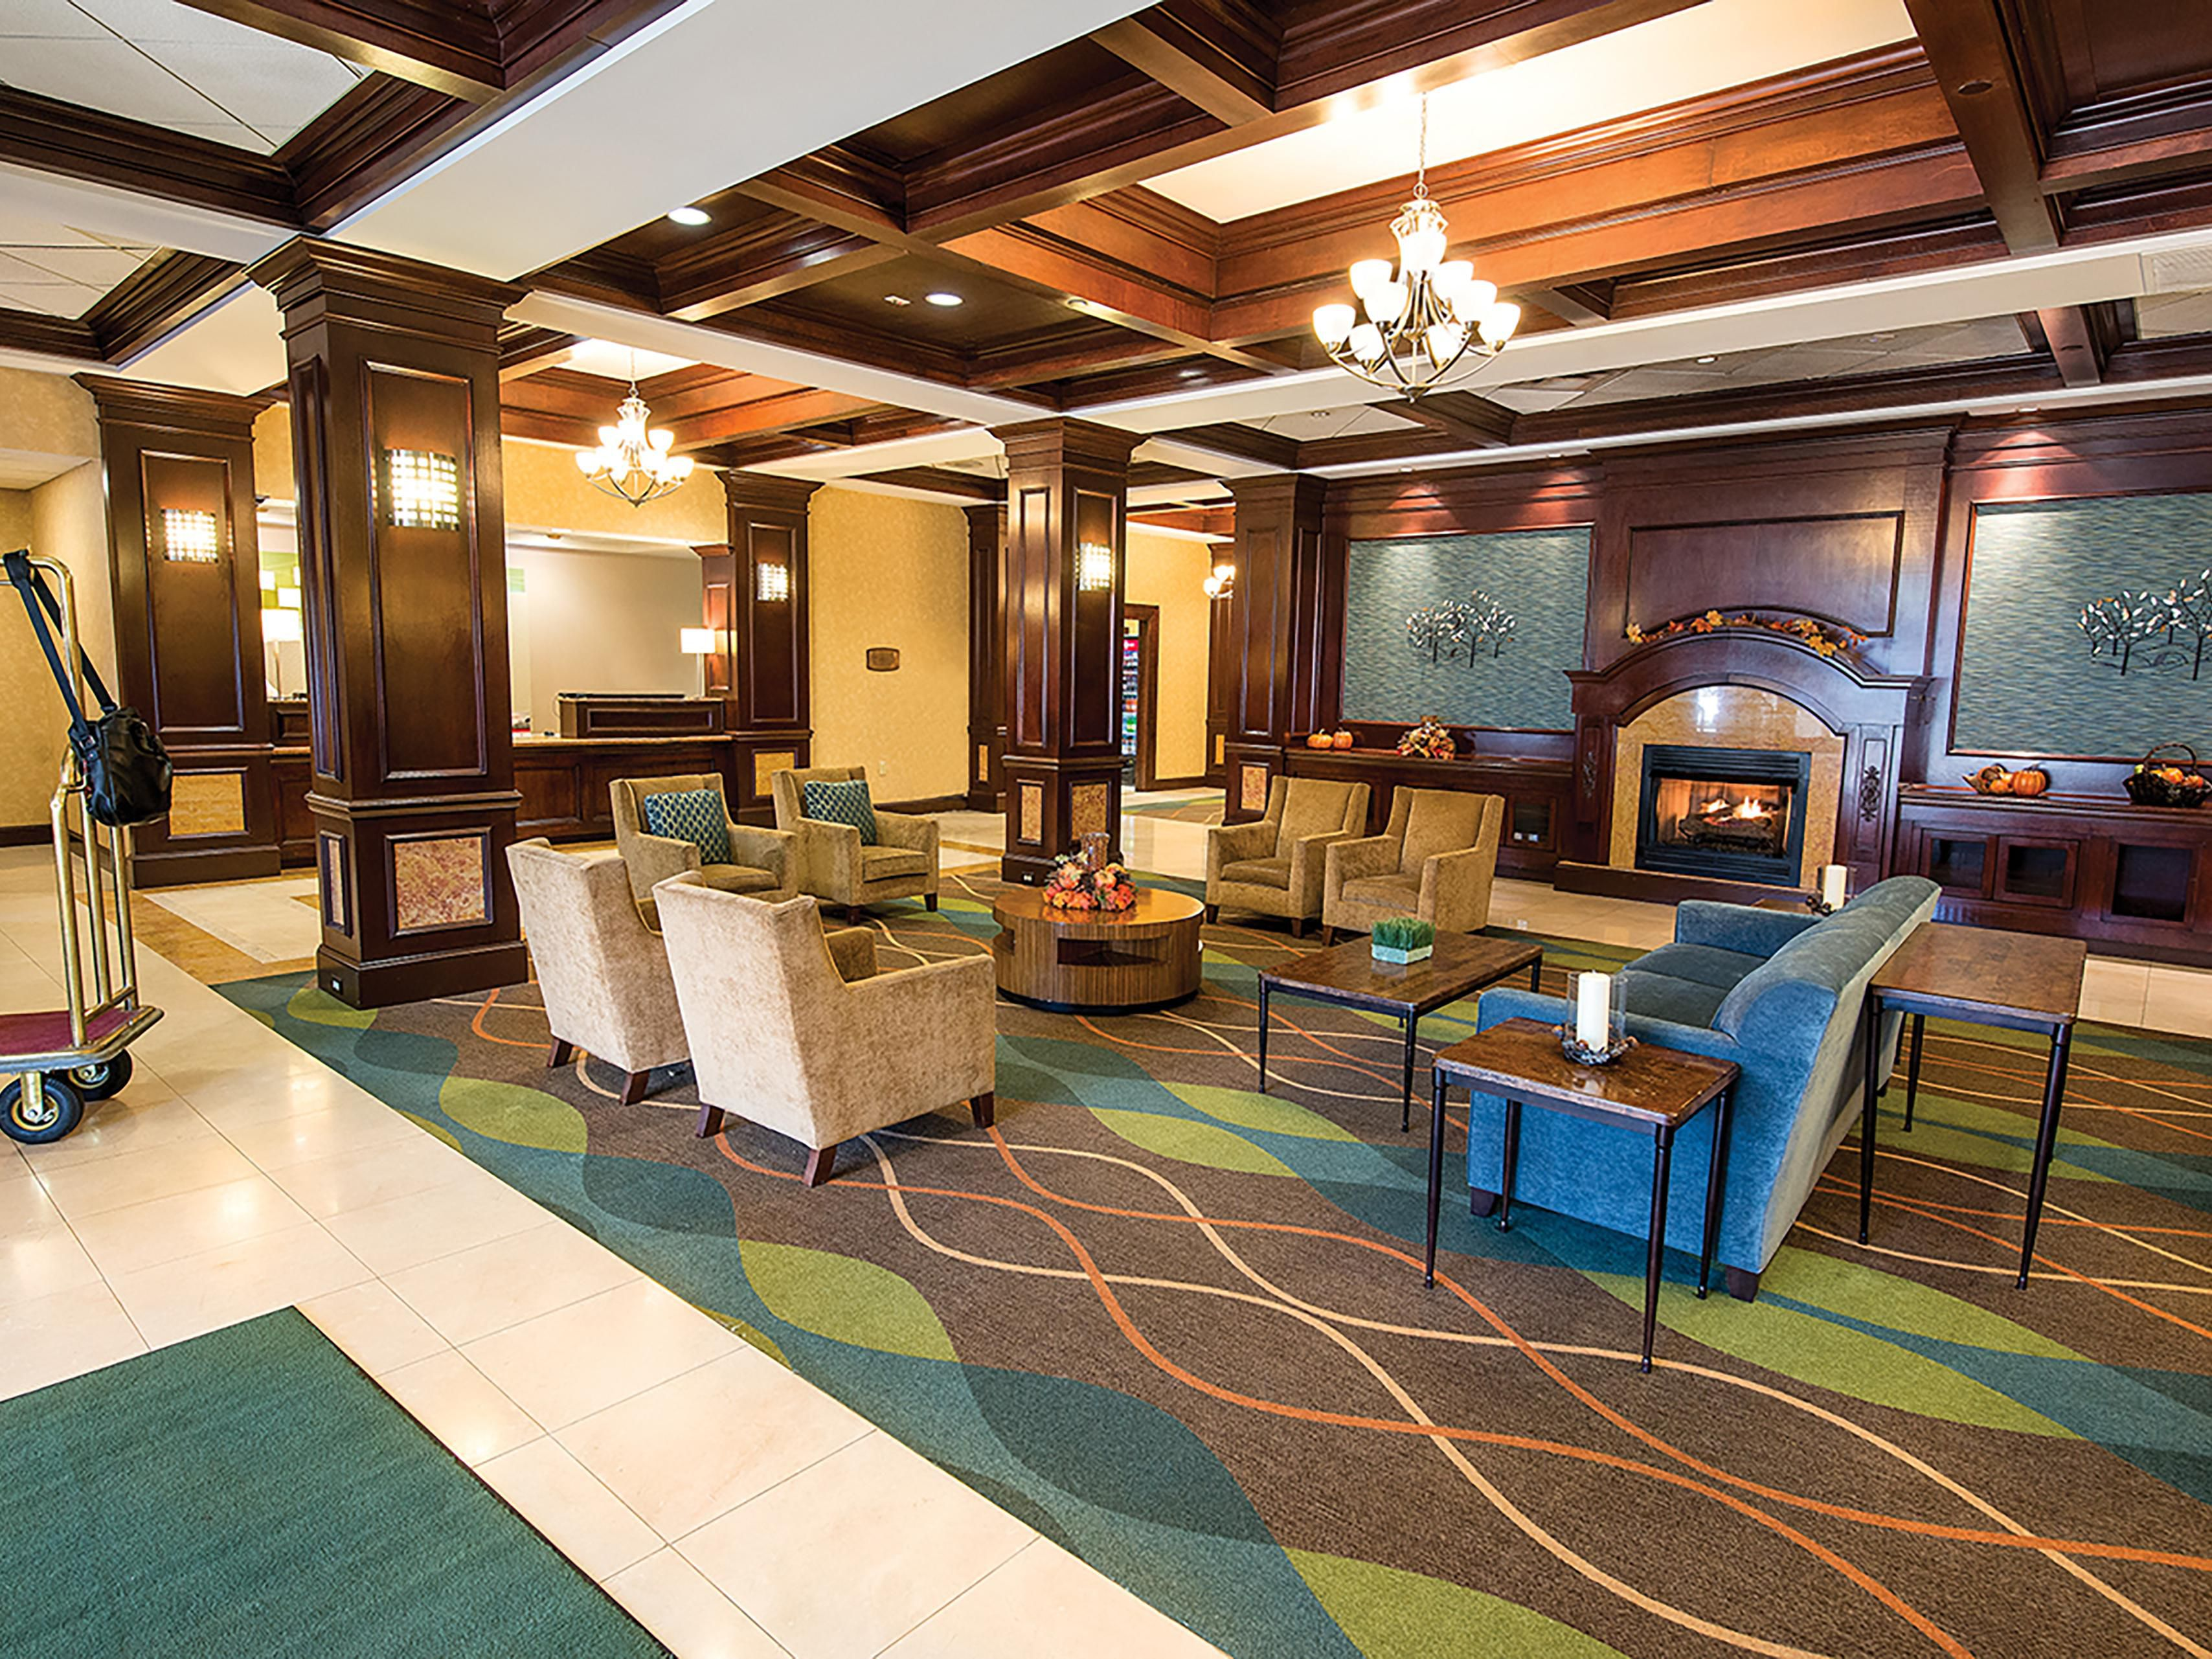 Spacious Lobby for casual gatherings